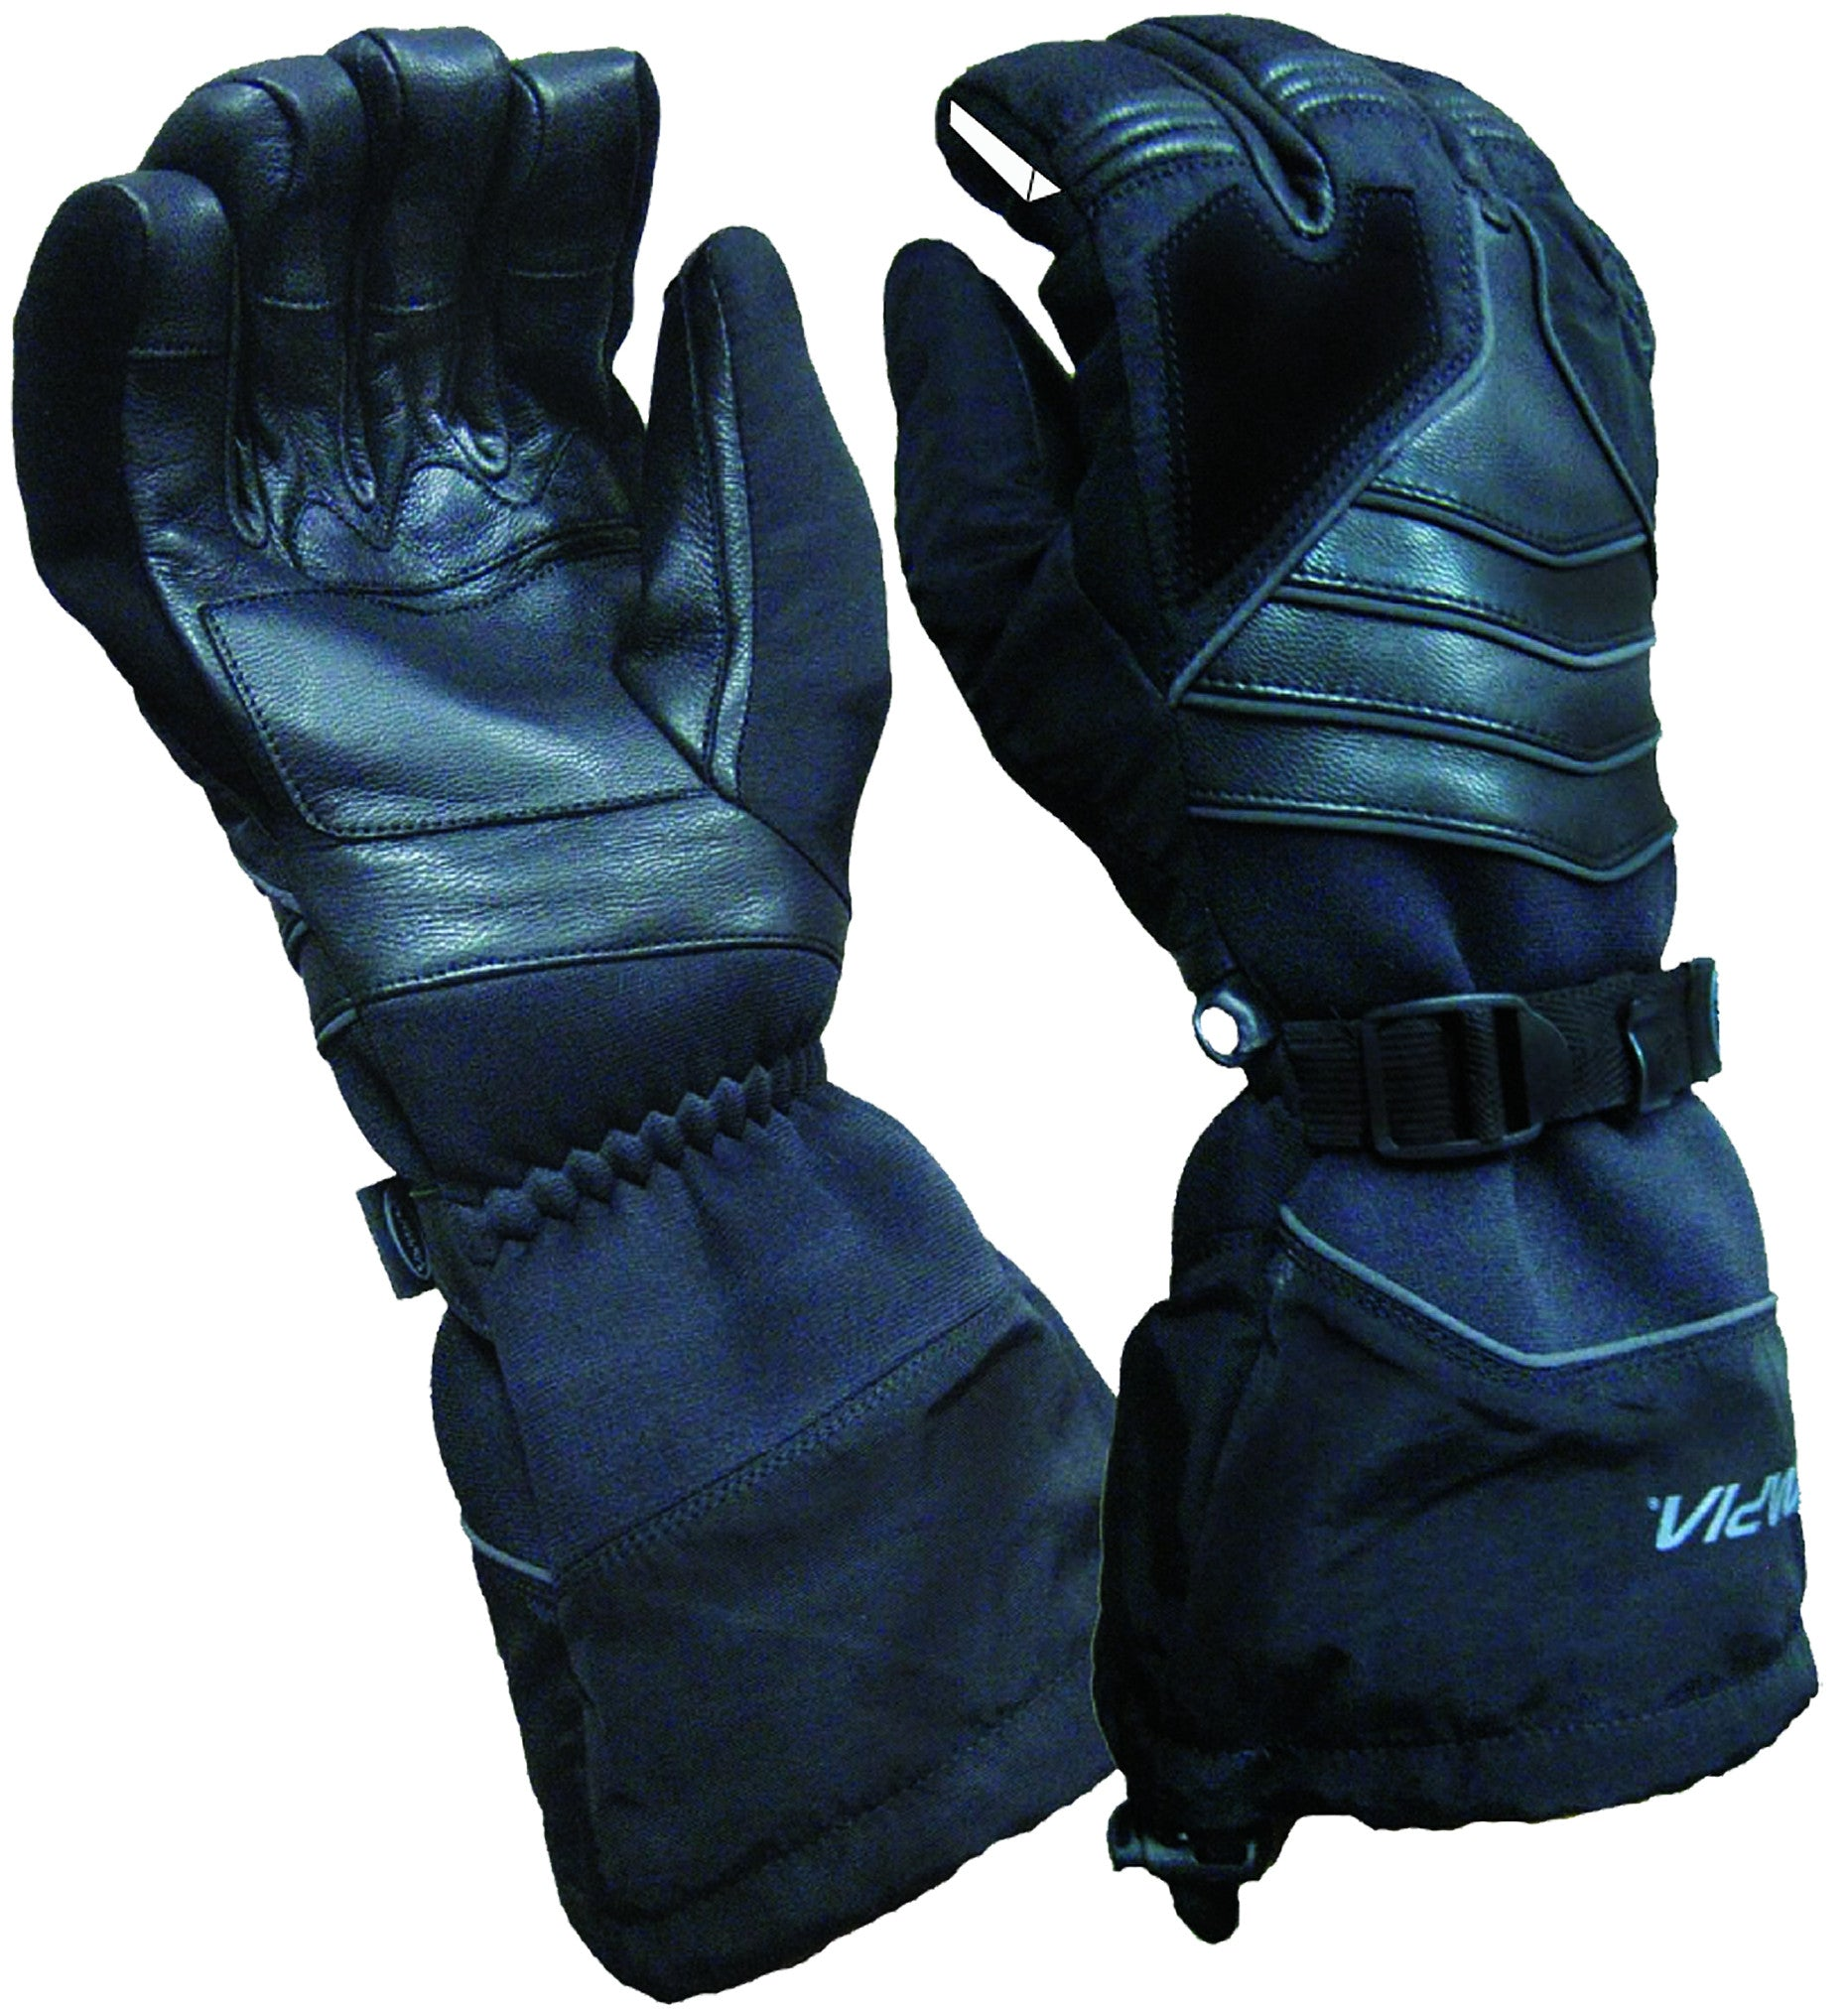 Insulated leather motorcycle gloves - Olympia Gloves 4295 Ladies Aventador Gloves Product Image